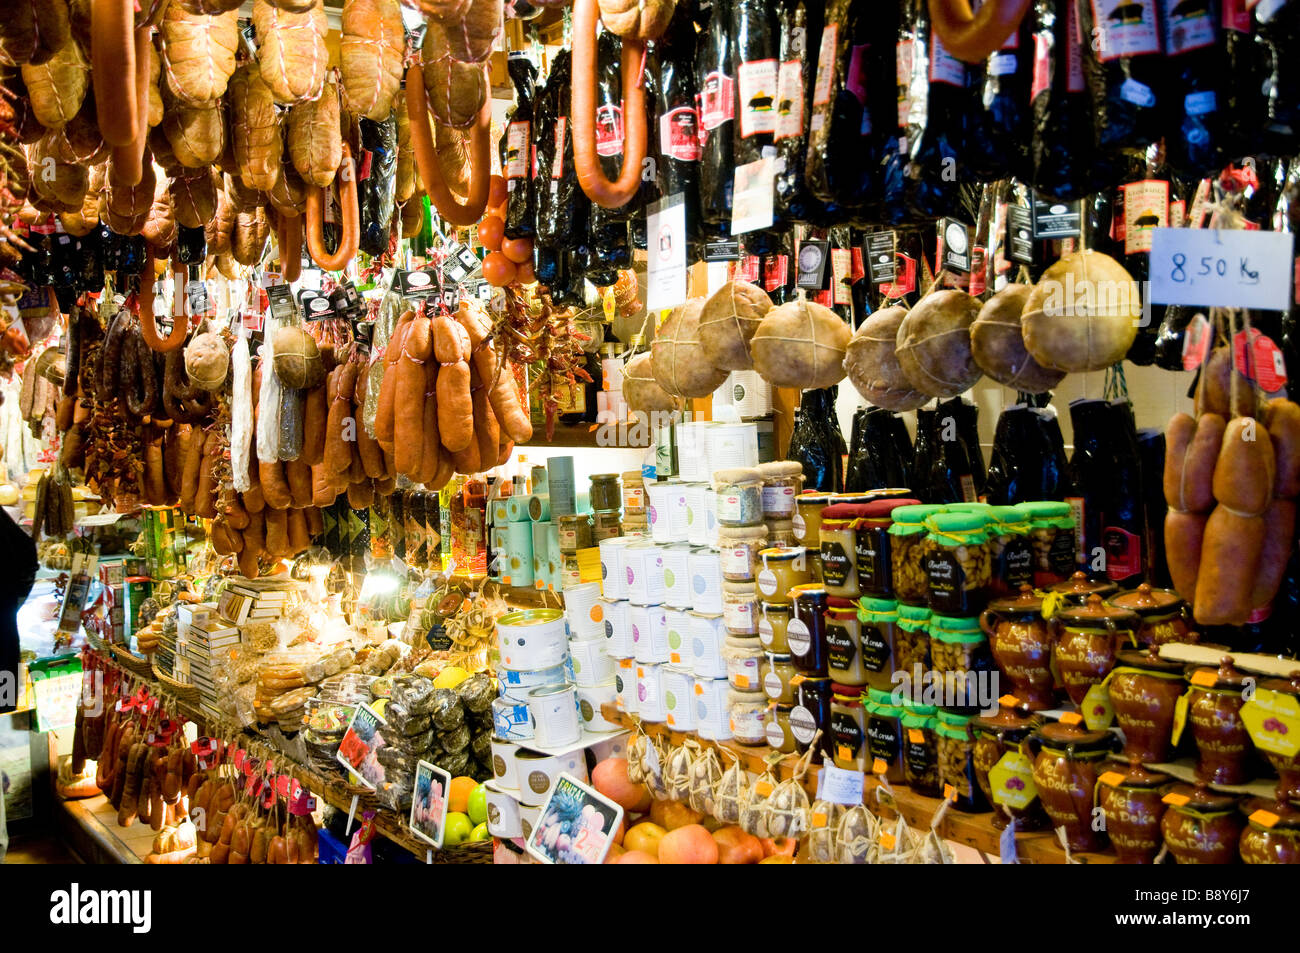 Europe Spain Balearic Islands Majorca Palma downtown Old City Colmado Santo Domingo little sausage and chese store - Stock Image